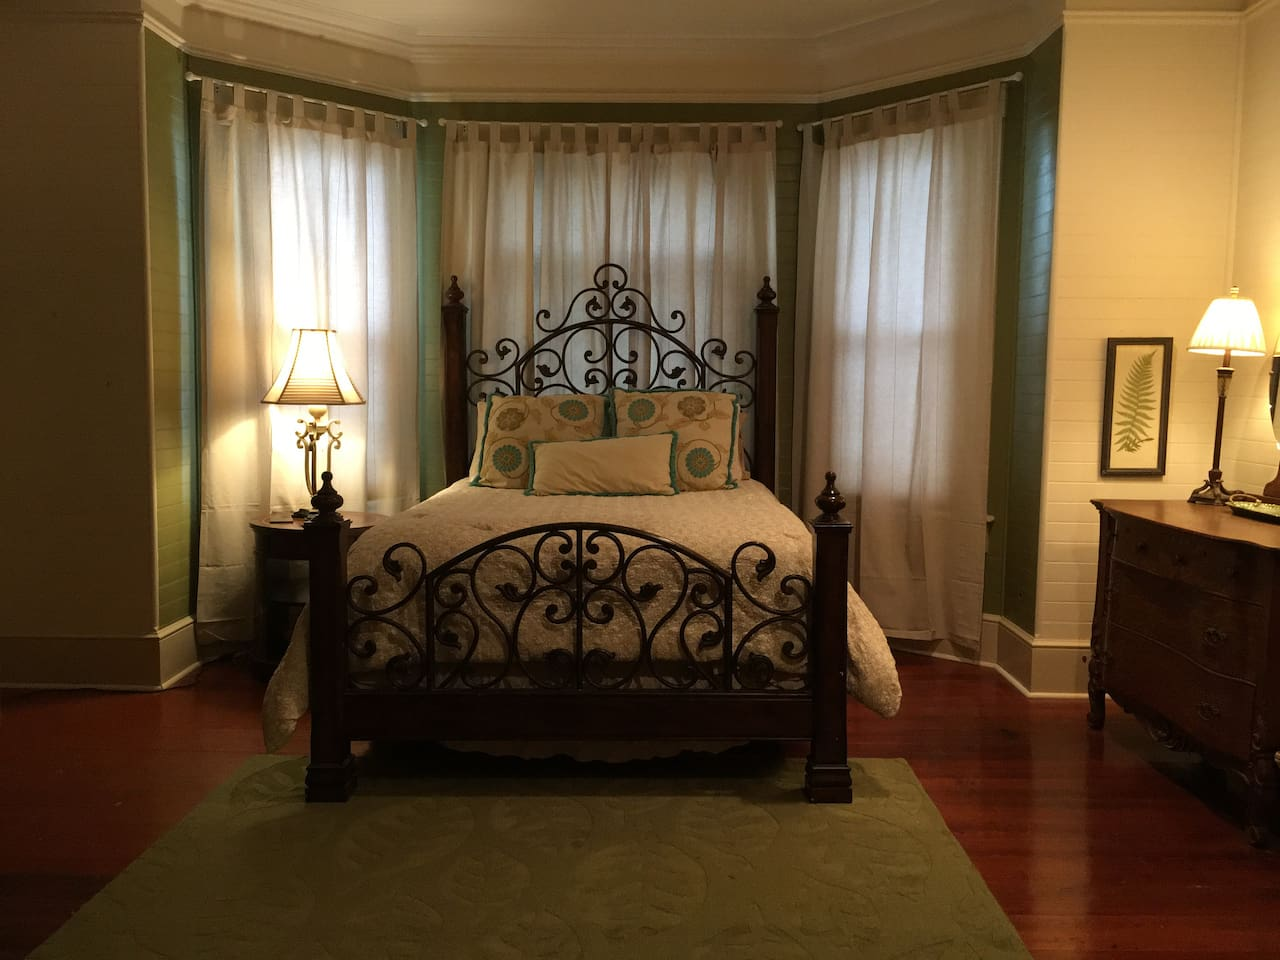 Sleep well in the most comfortable queen size bed with fine linens!